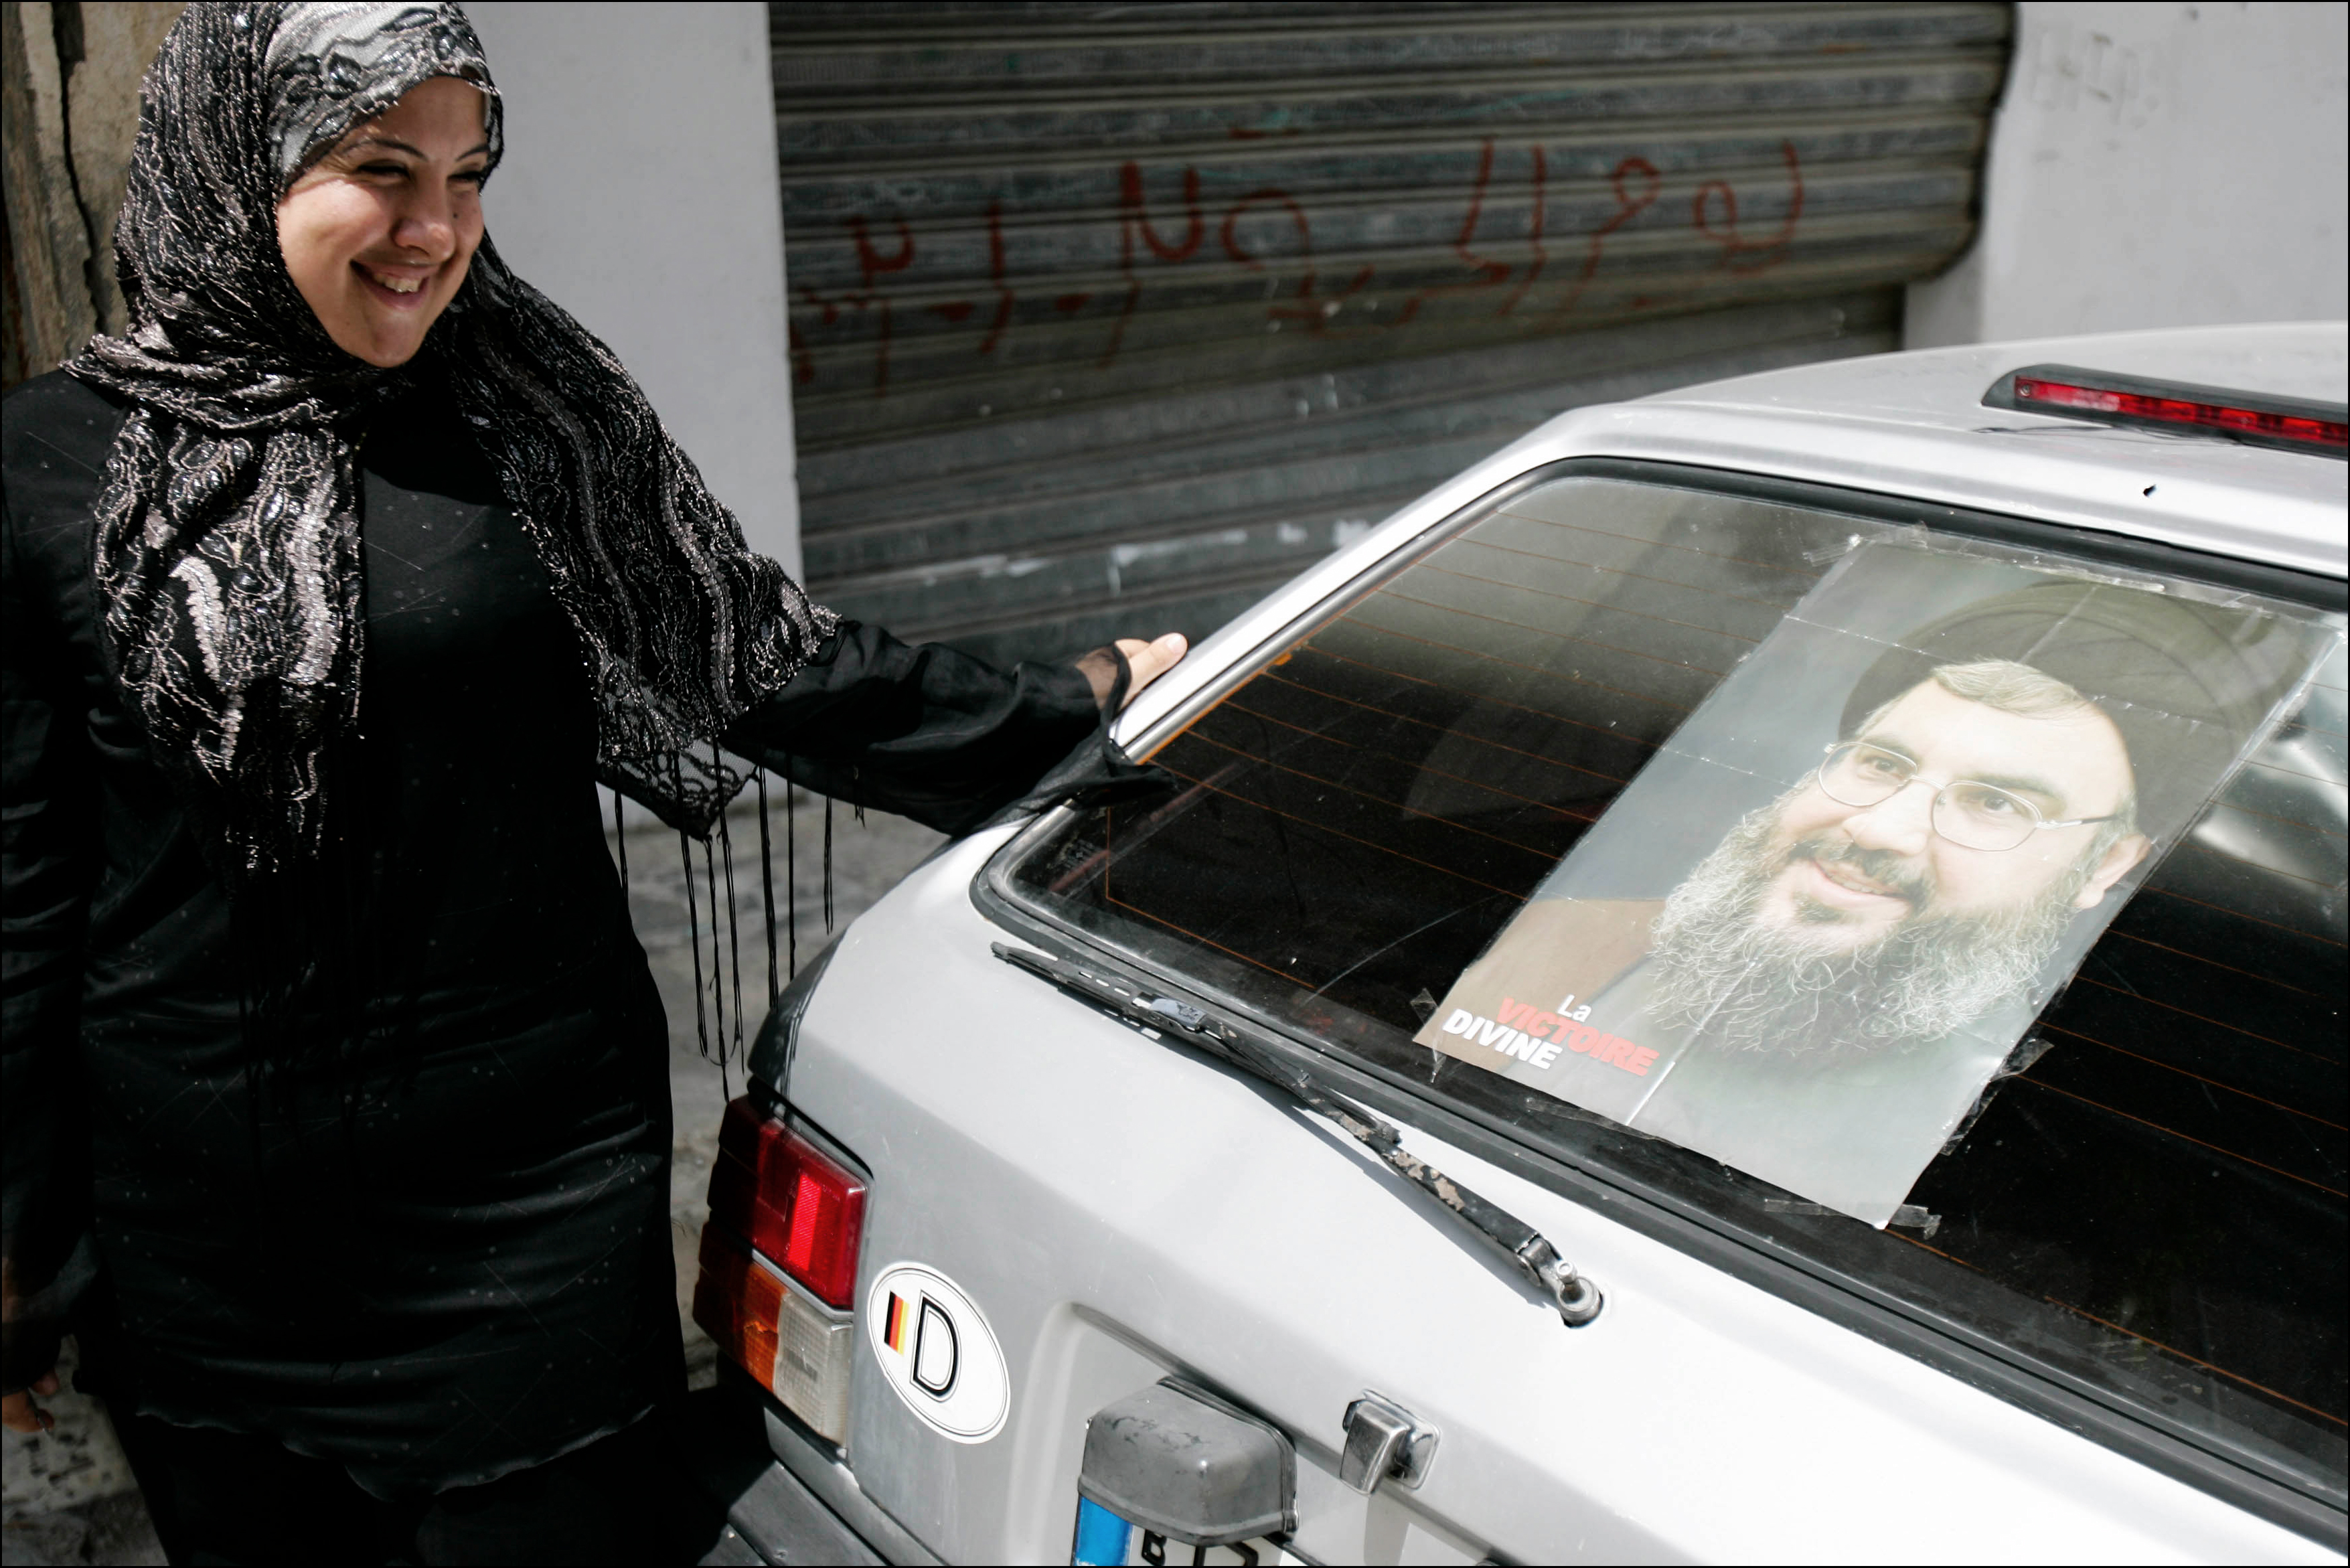 A Lebanese girl shows off a portrait of HIzbollah leader Hassan Nasrallah on her car in the southern Lebanese town of Abbasiyeh. Many Lebanese celebrated what they perceived as the win of Hizbollah after a month long war with Israel. The war lead to over 1000 civilian deaths in Lebanon and vast destruction of the country's infrastructure from heavy Israeli bombardments.